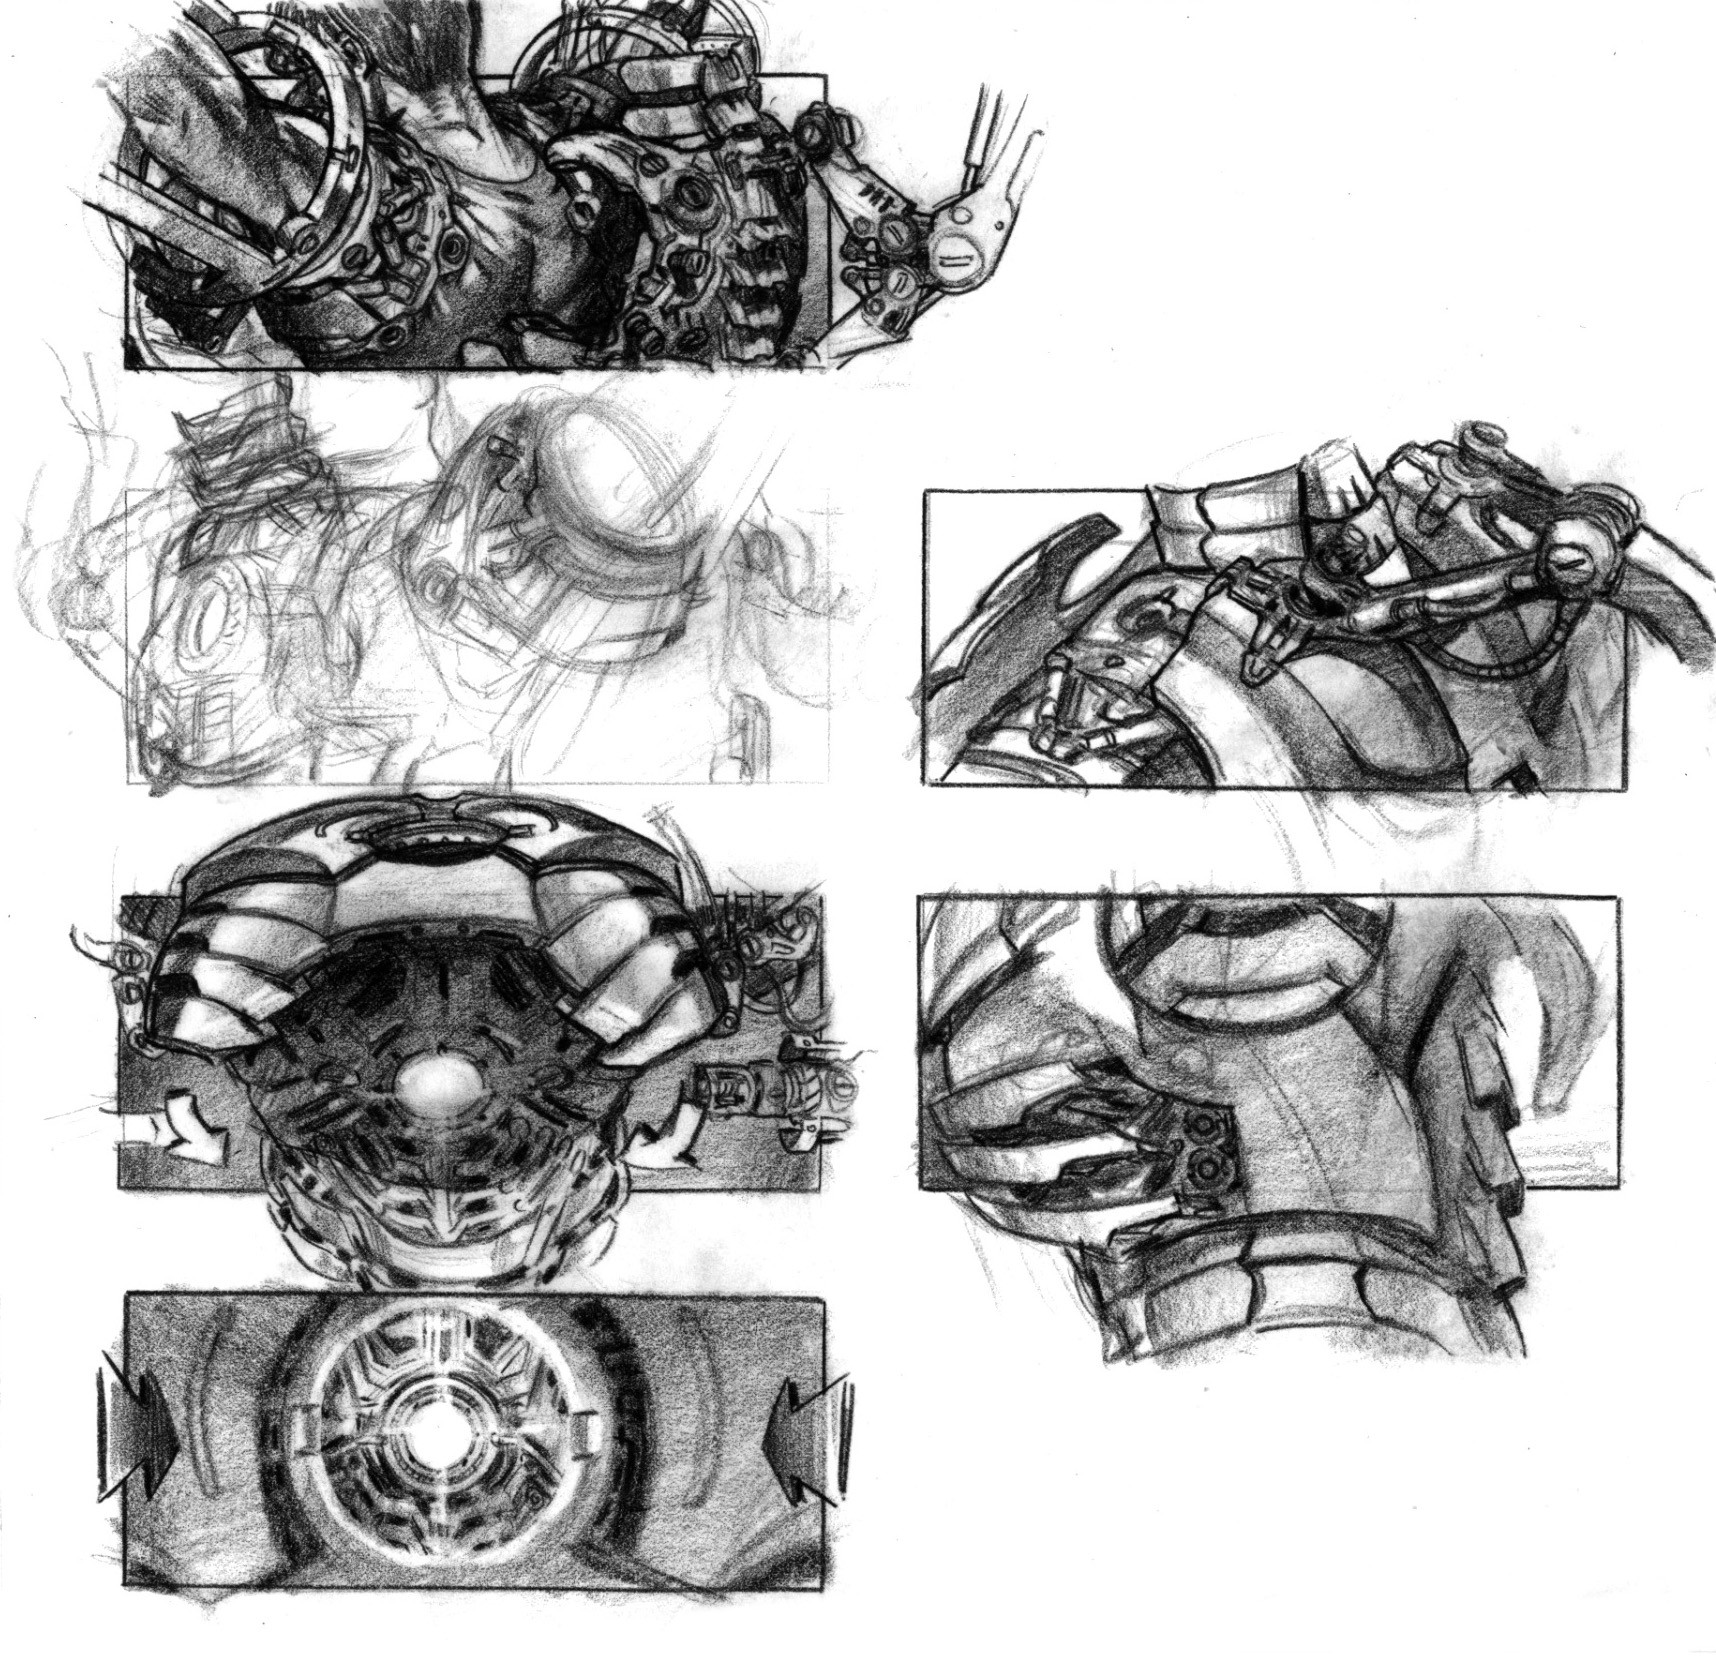 Suiting-up storyboards showing potential key shots in the suit-up sequence.(Pencil on vellum)